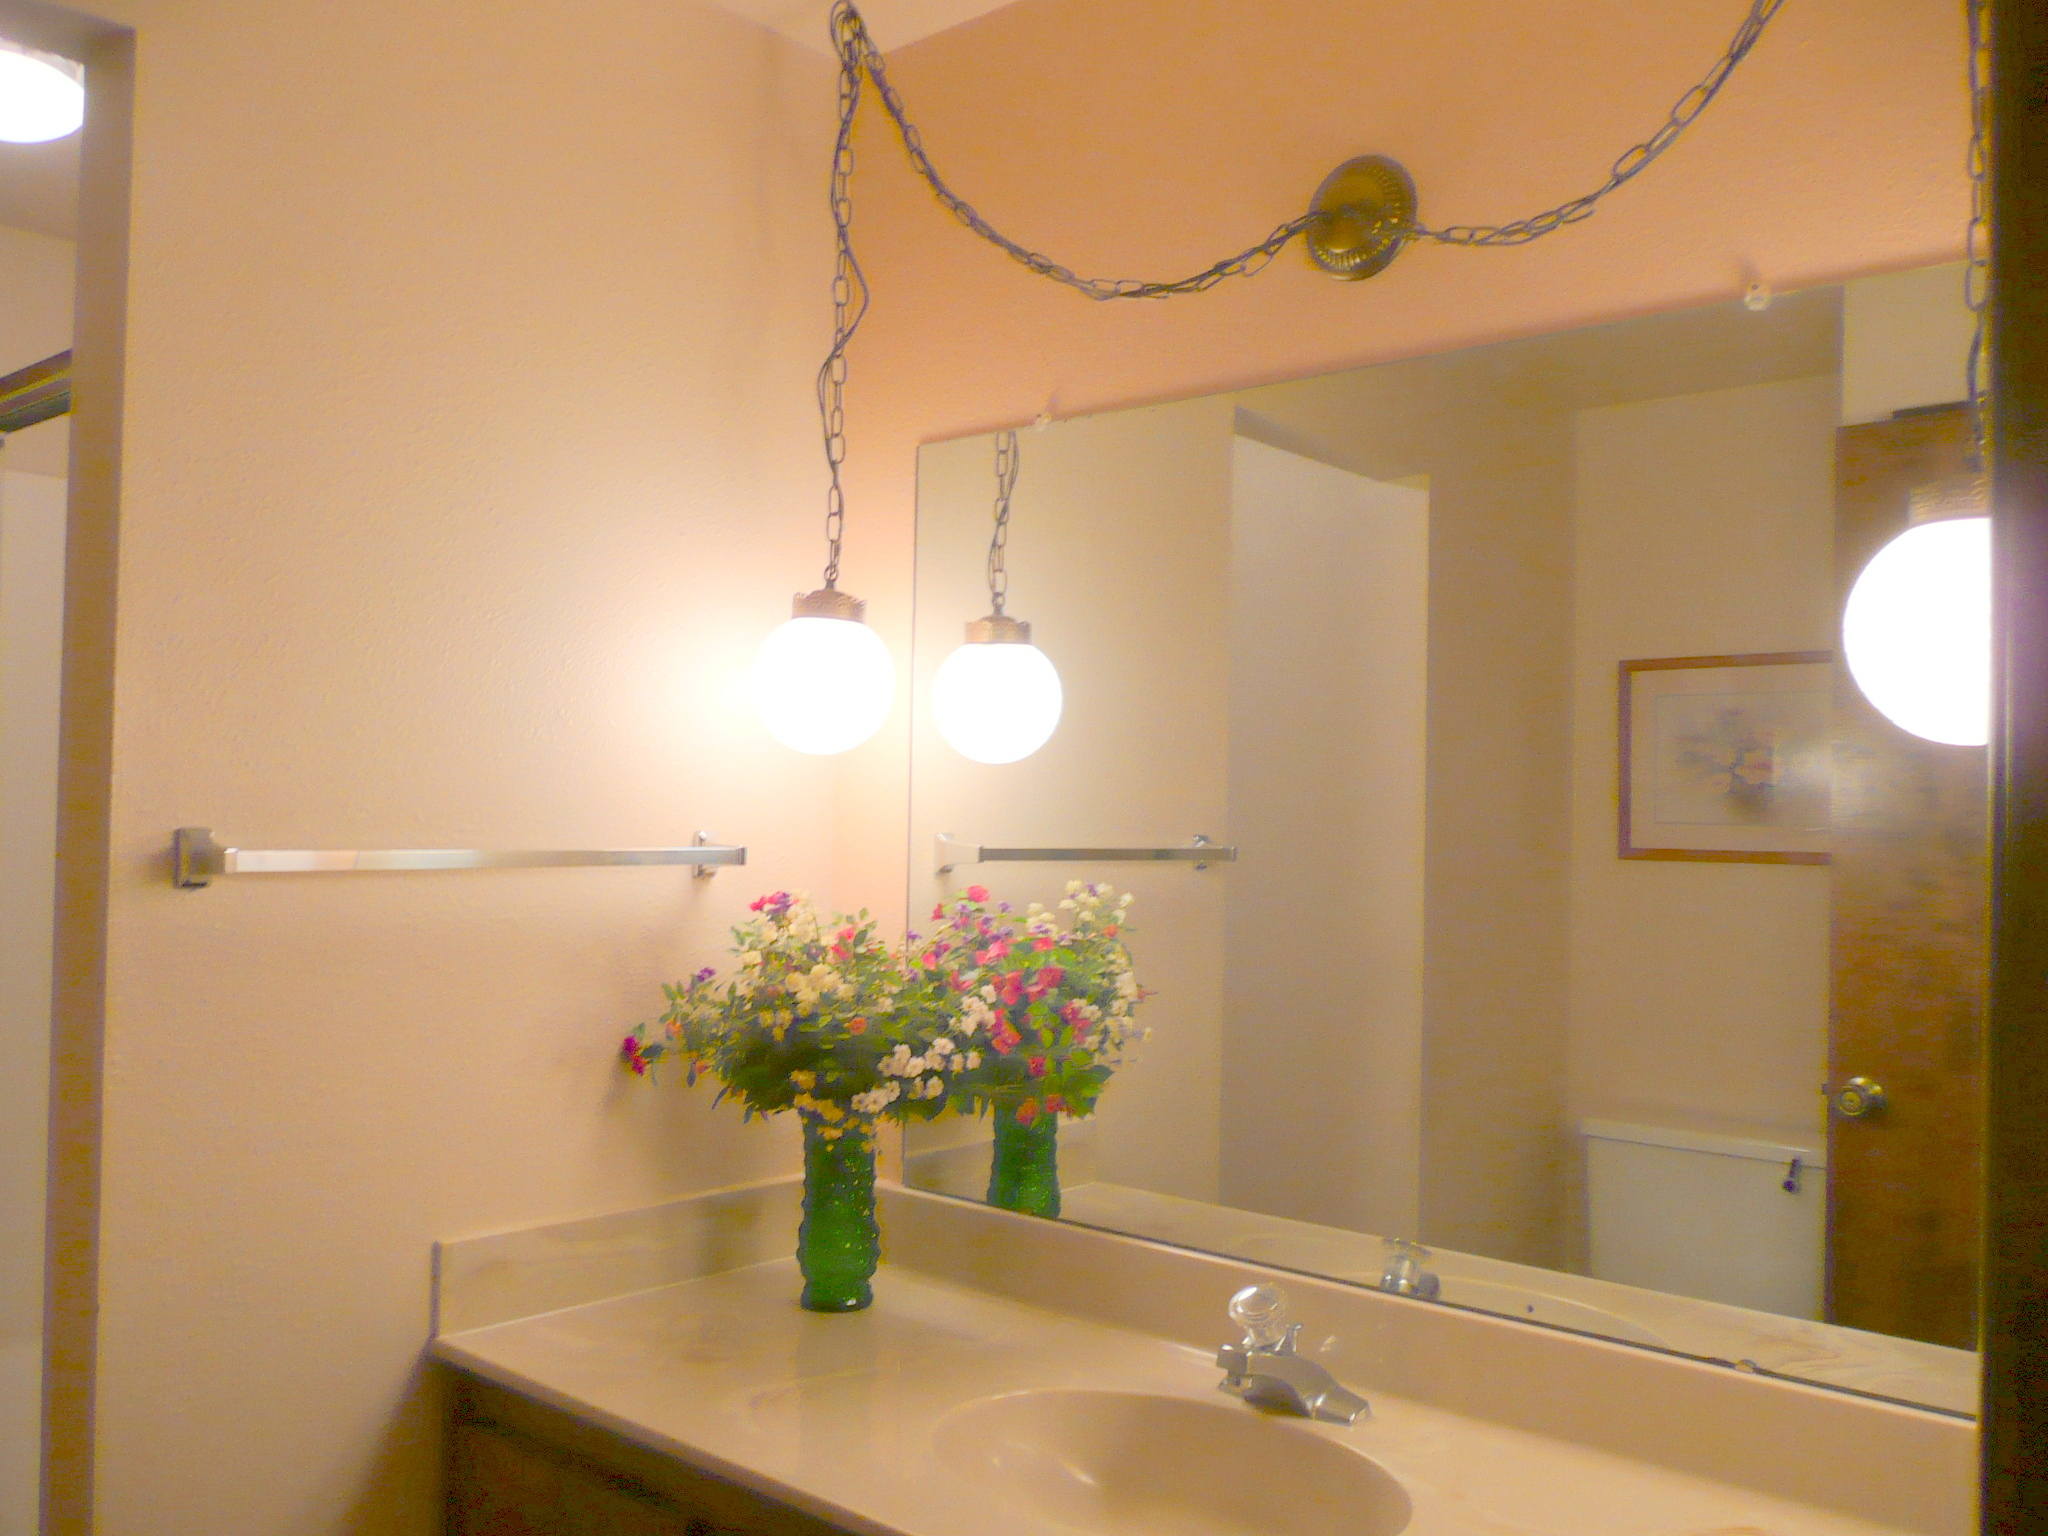 How High Do You Hang Vanity Lights : Updating Bathroom Vanity Lighting Tips for Home Sellers Home Staging : Creative Concepts and ...